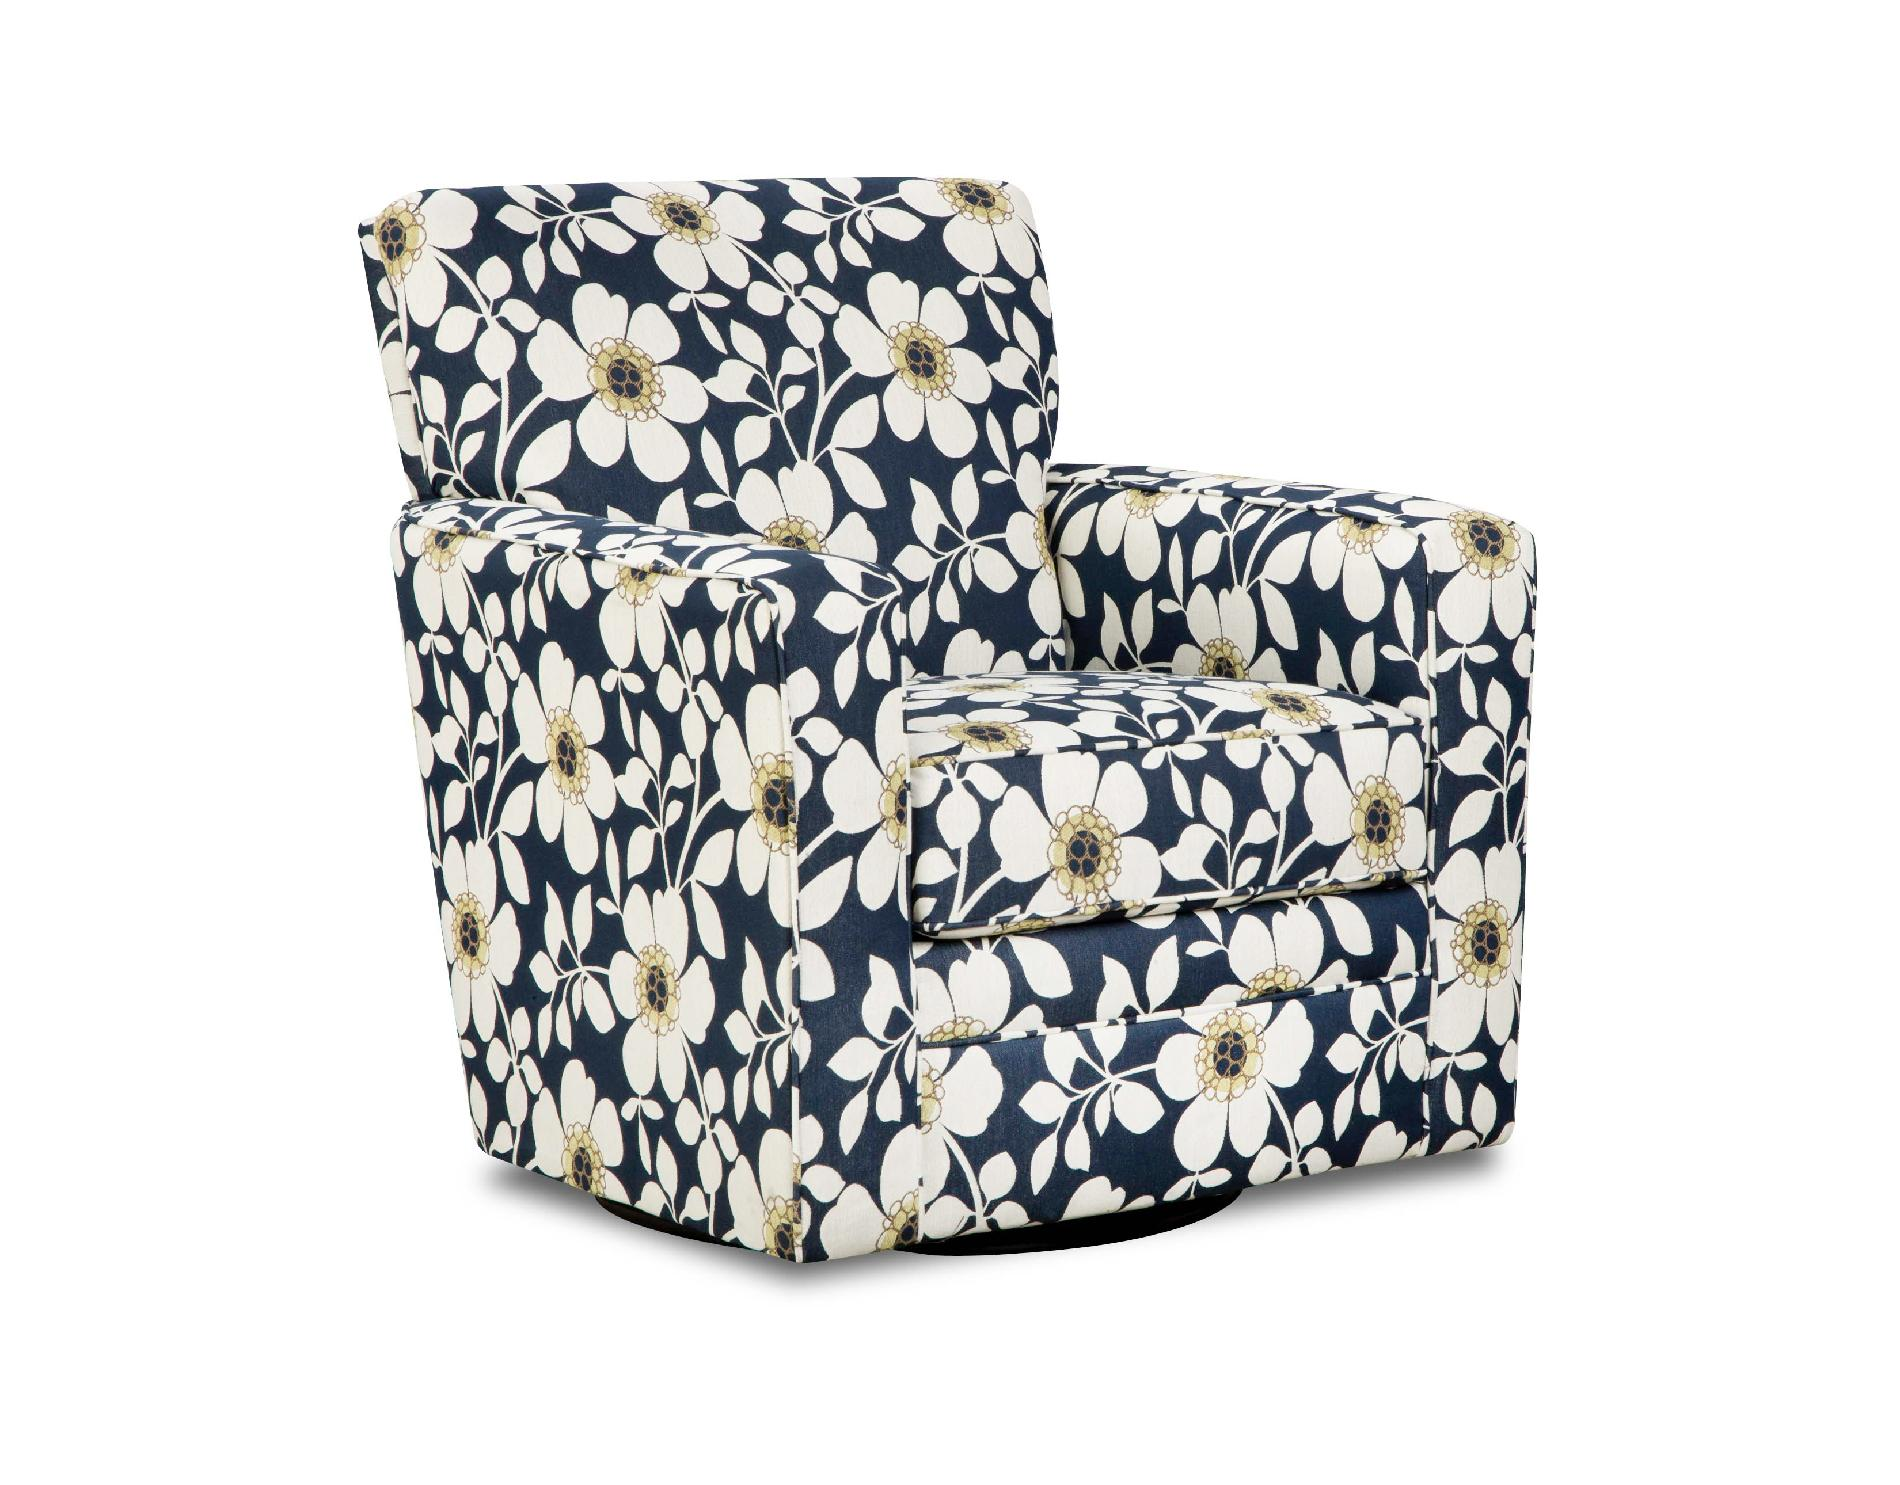 Simmons Upholstery Floral Print Chicklet Upholstered Swivel Chair Shop Living Room Furniture